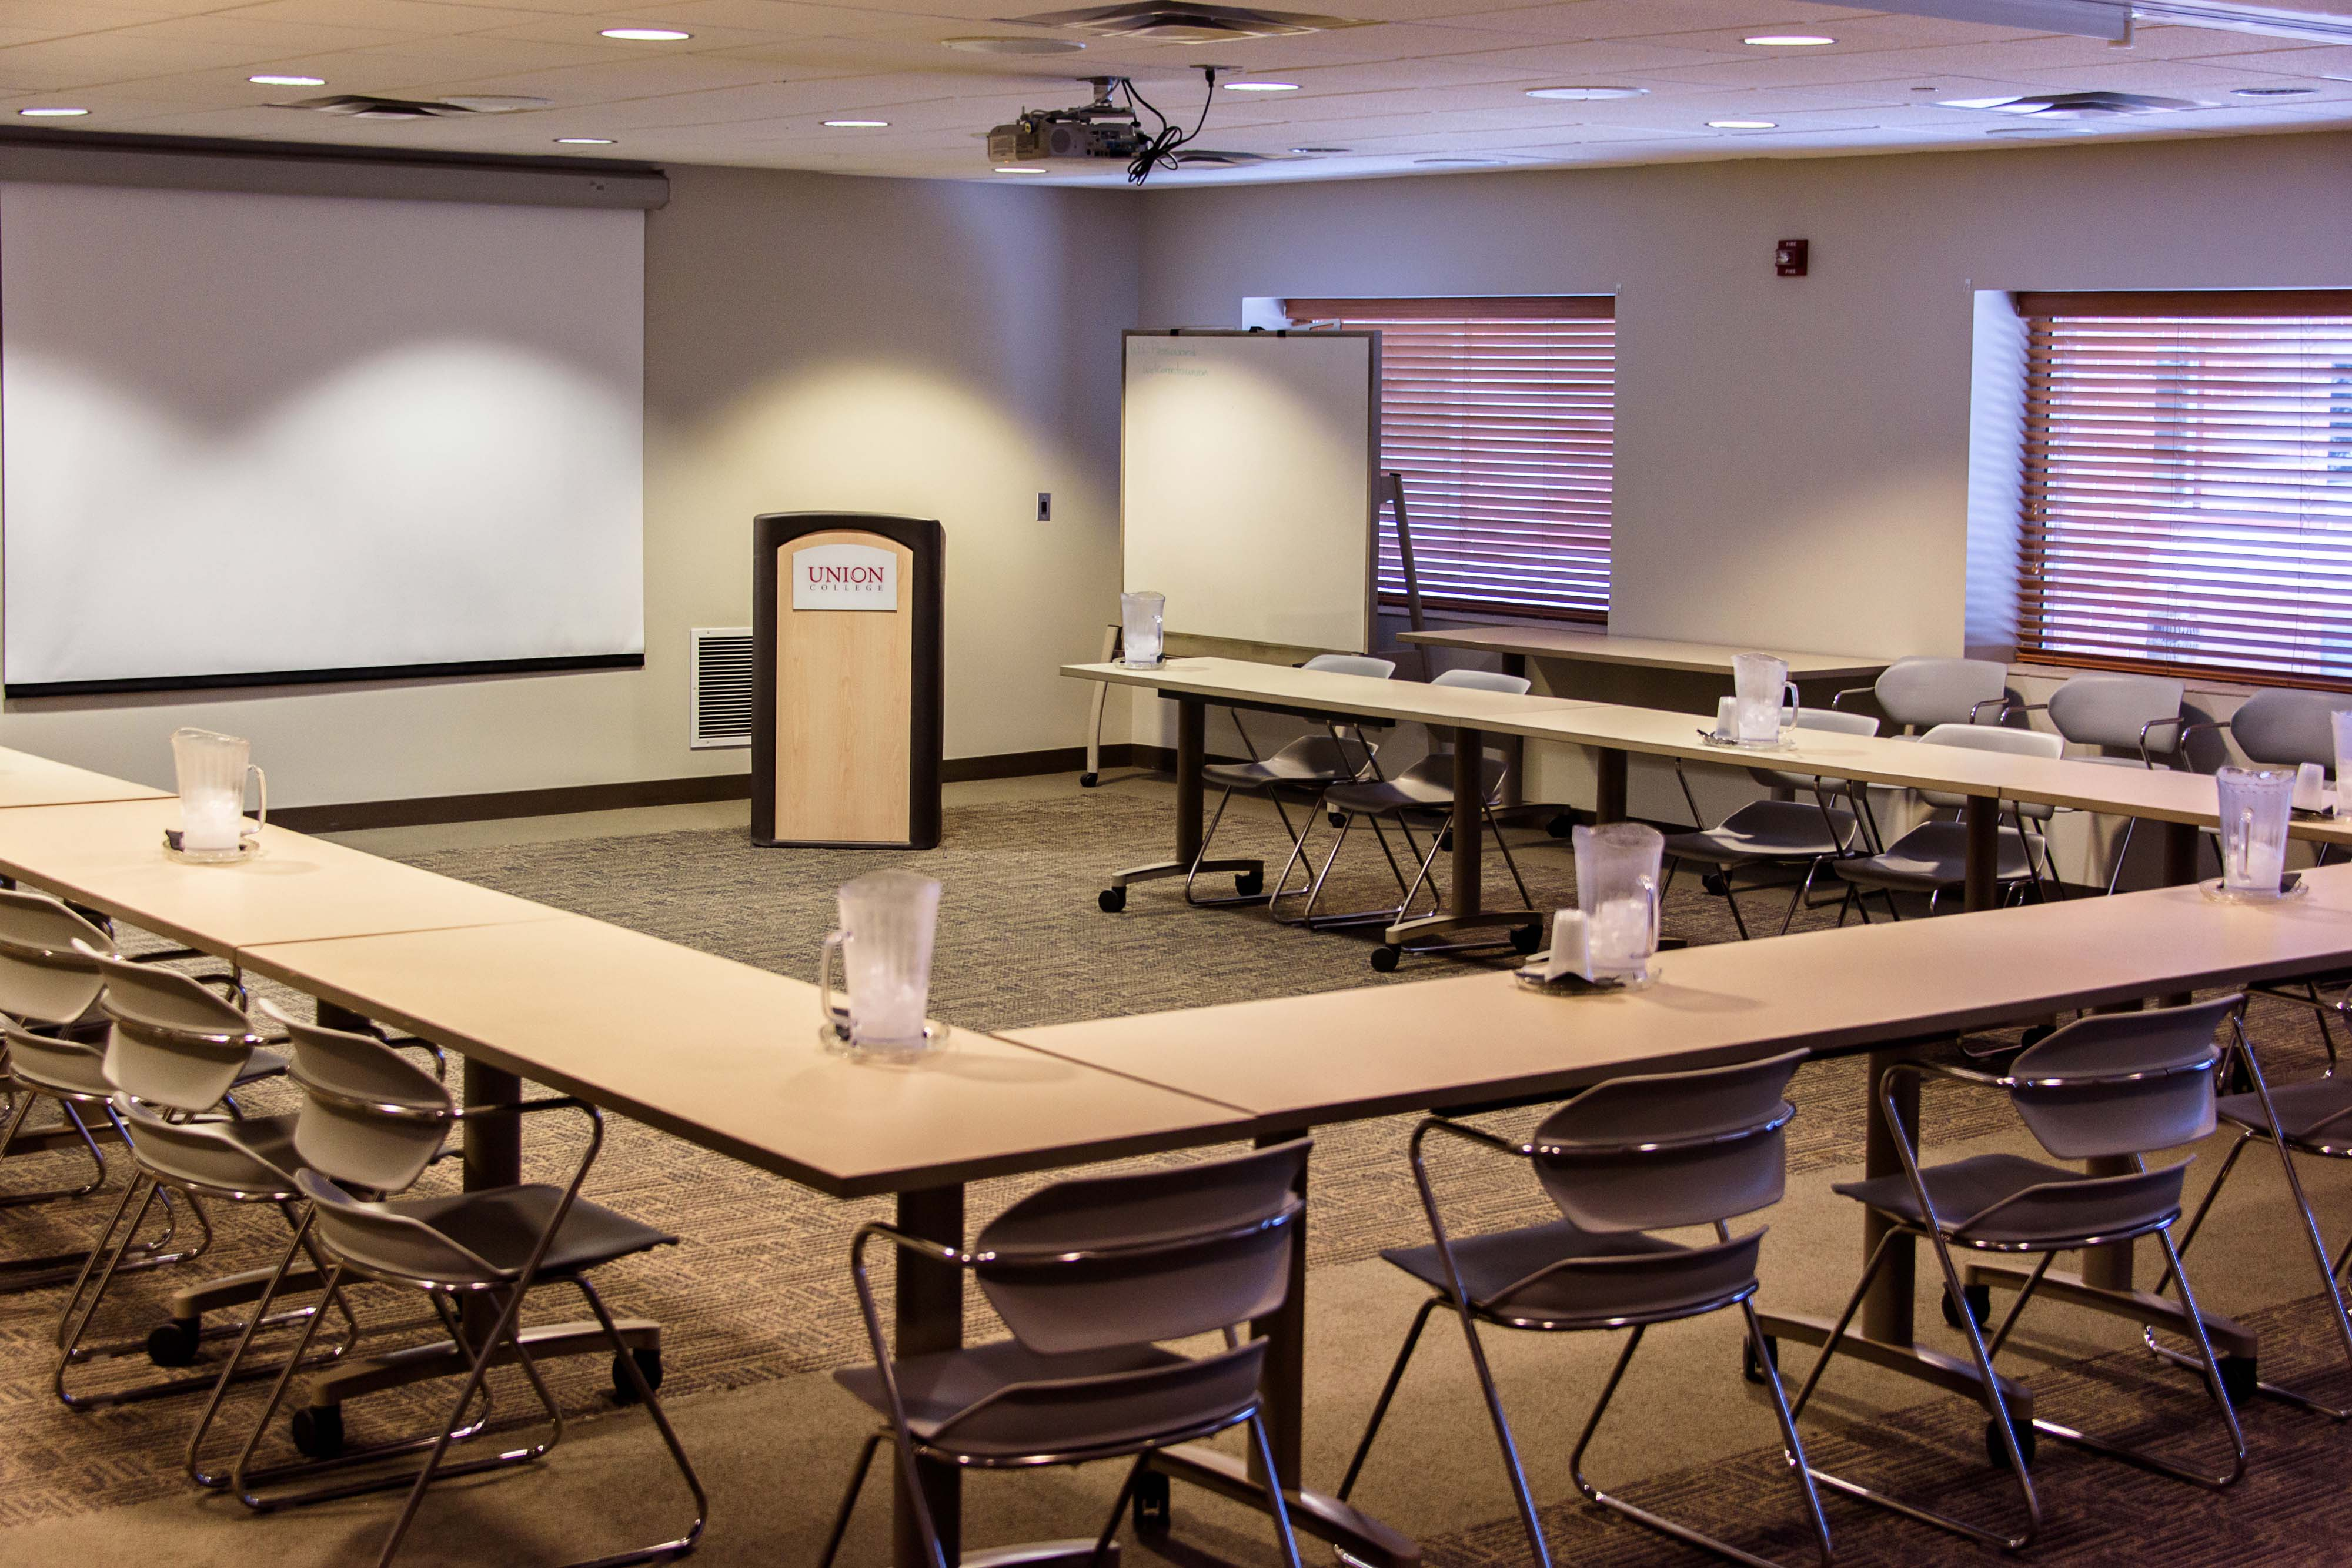 A closer angle showcasing the tables, seating, projector screen, podium, and whiteboard in the Shawnee-Porter Care Conference Room (shown from the back of the room)